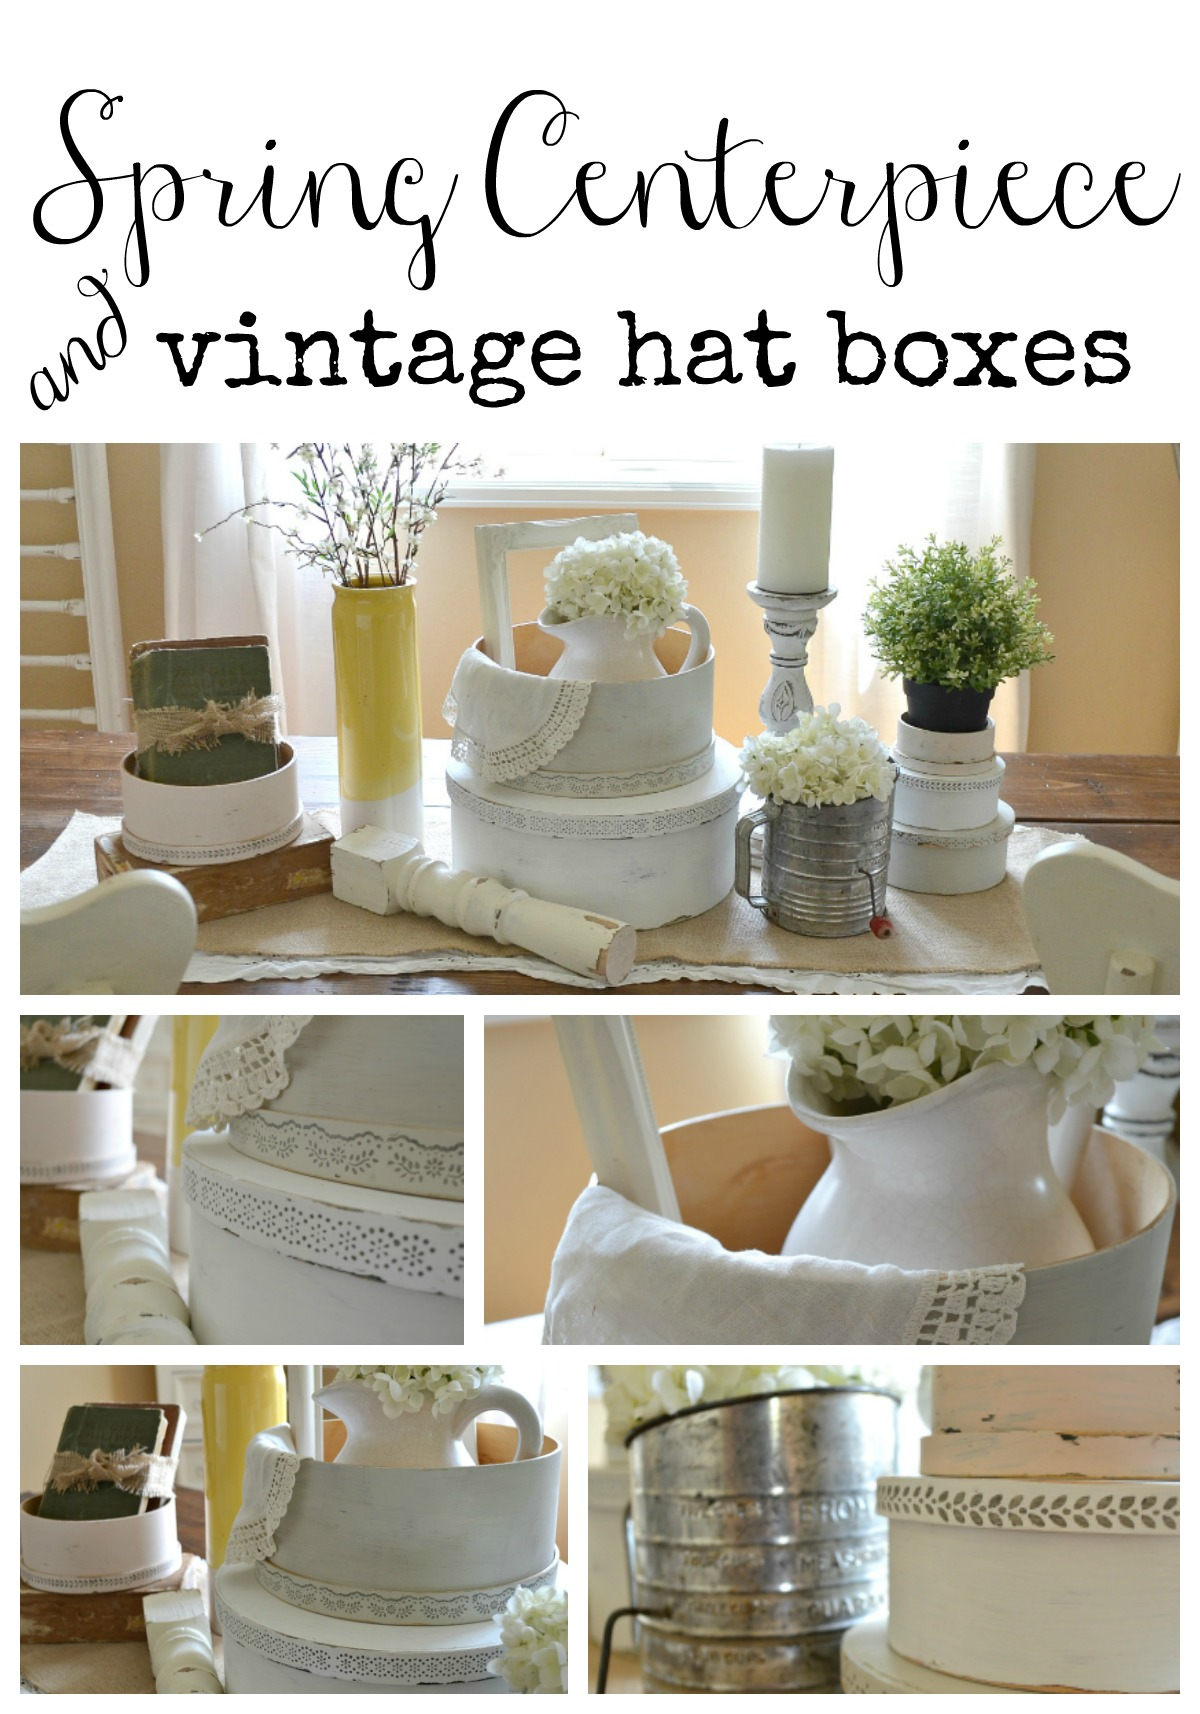 Spring Centerpiece featuring Vintage Hat Boxes